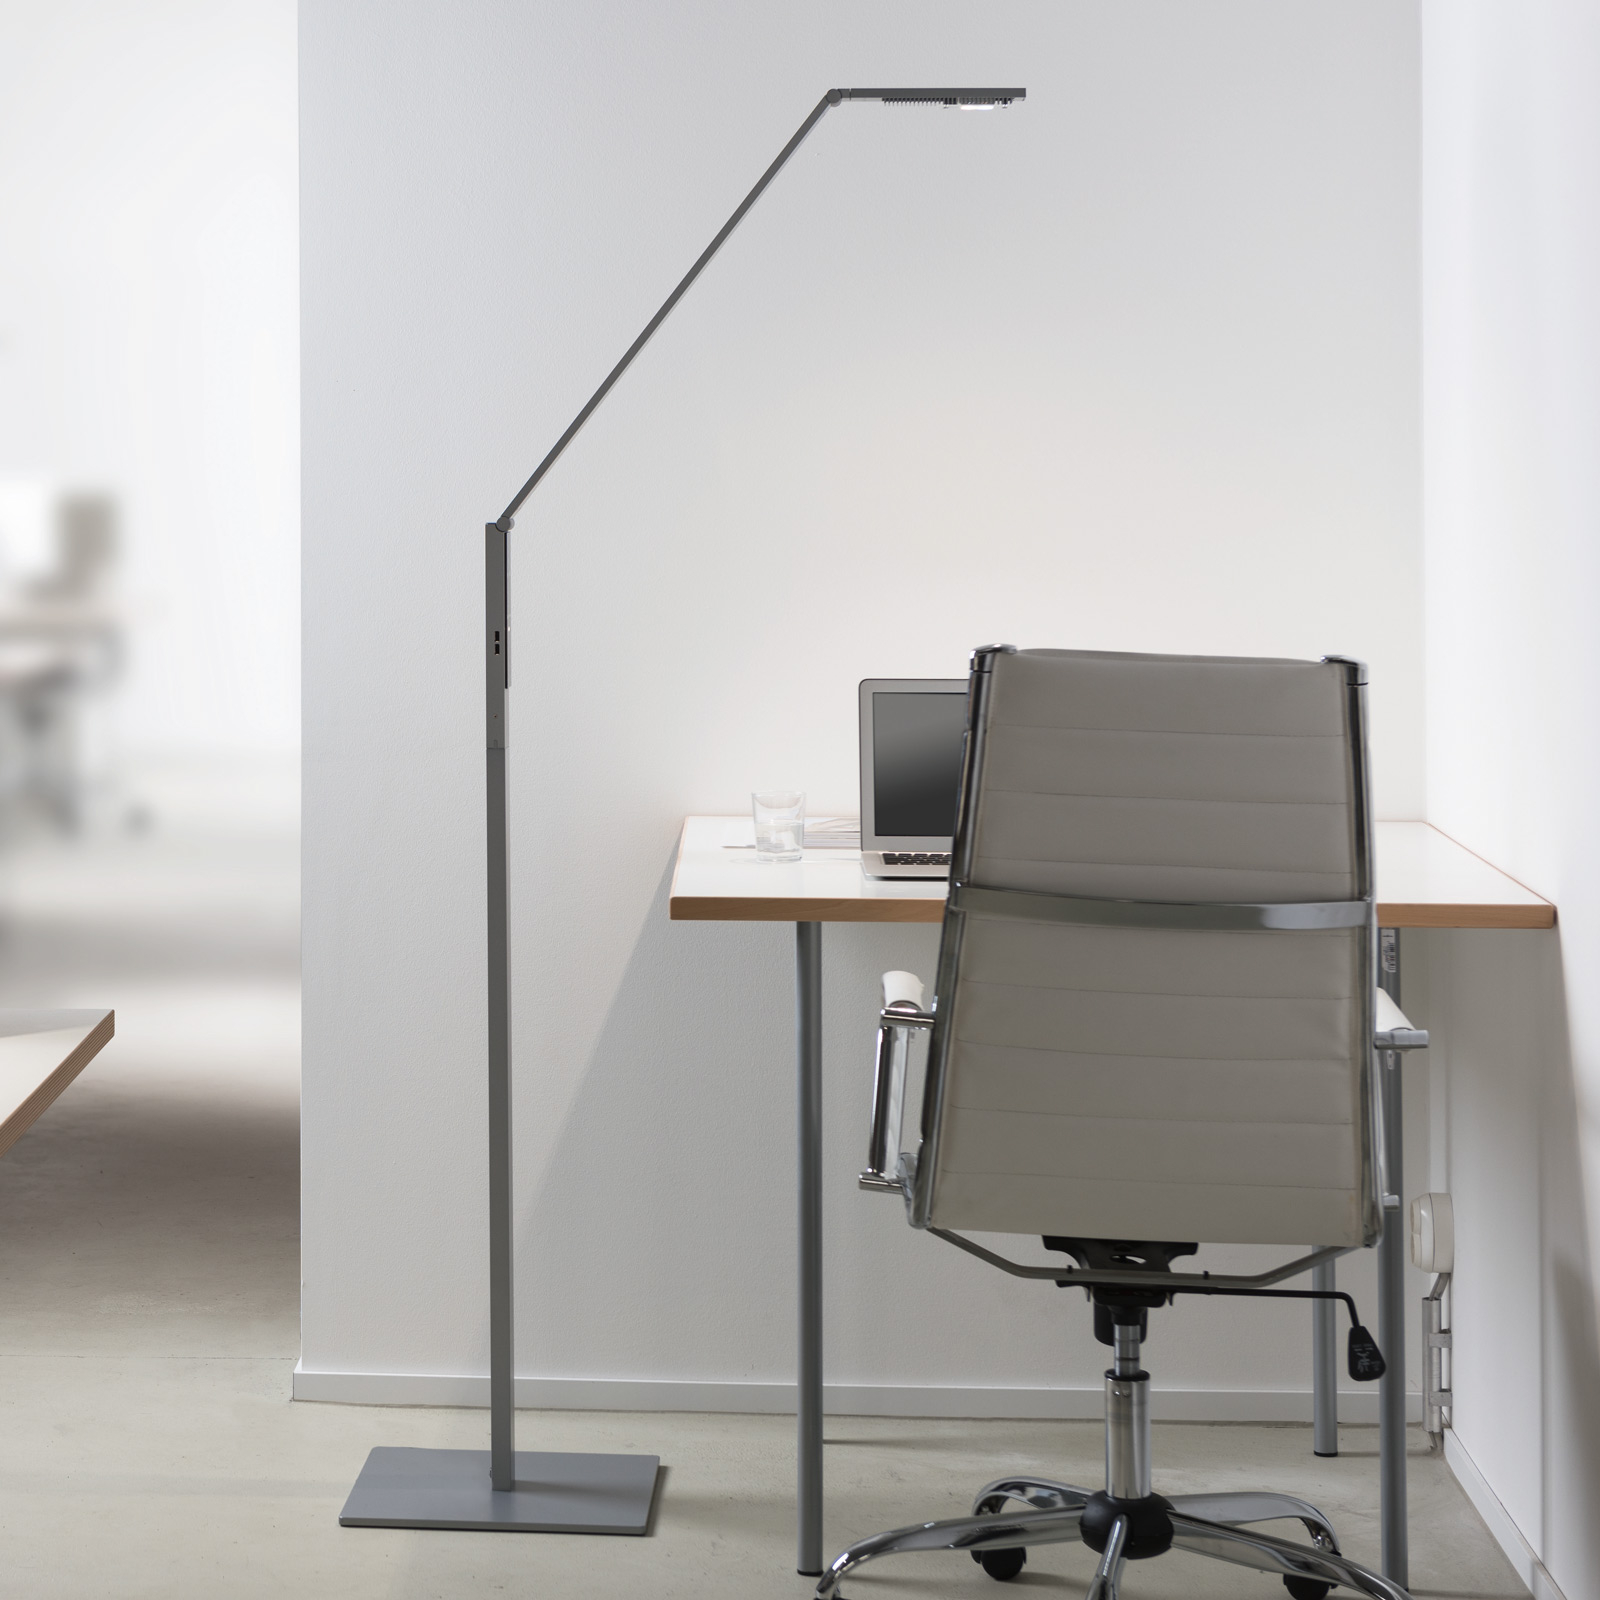 Luctra Floor Linear LED floor lamp controllable_2614021_1